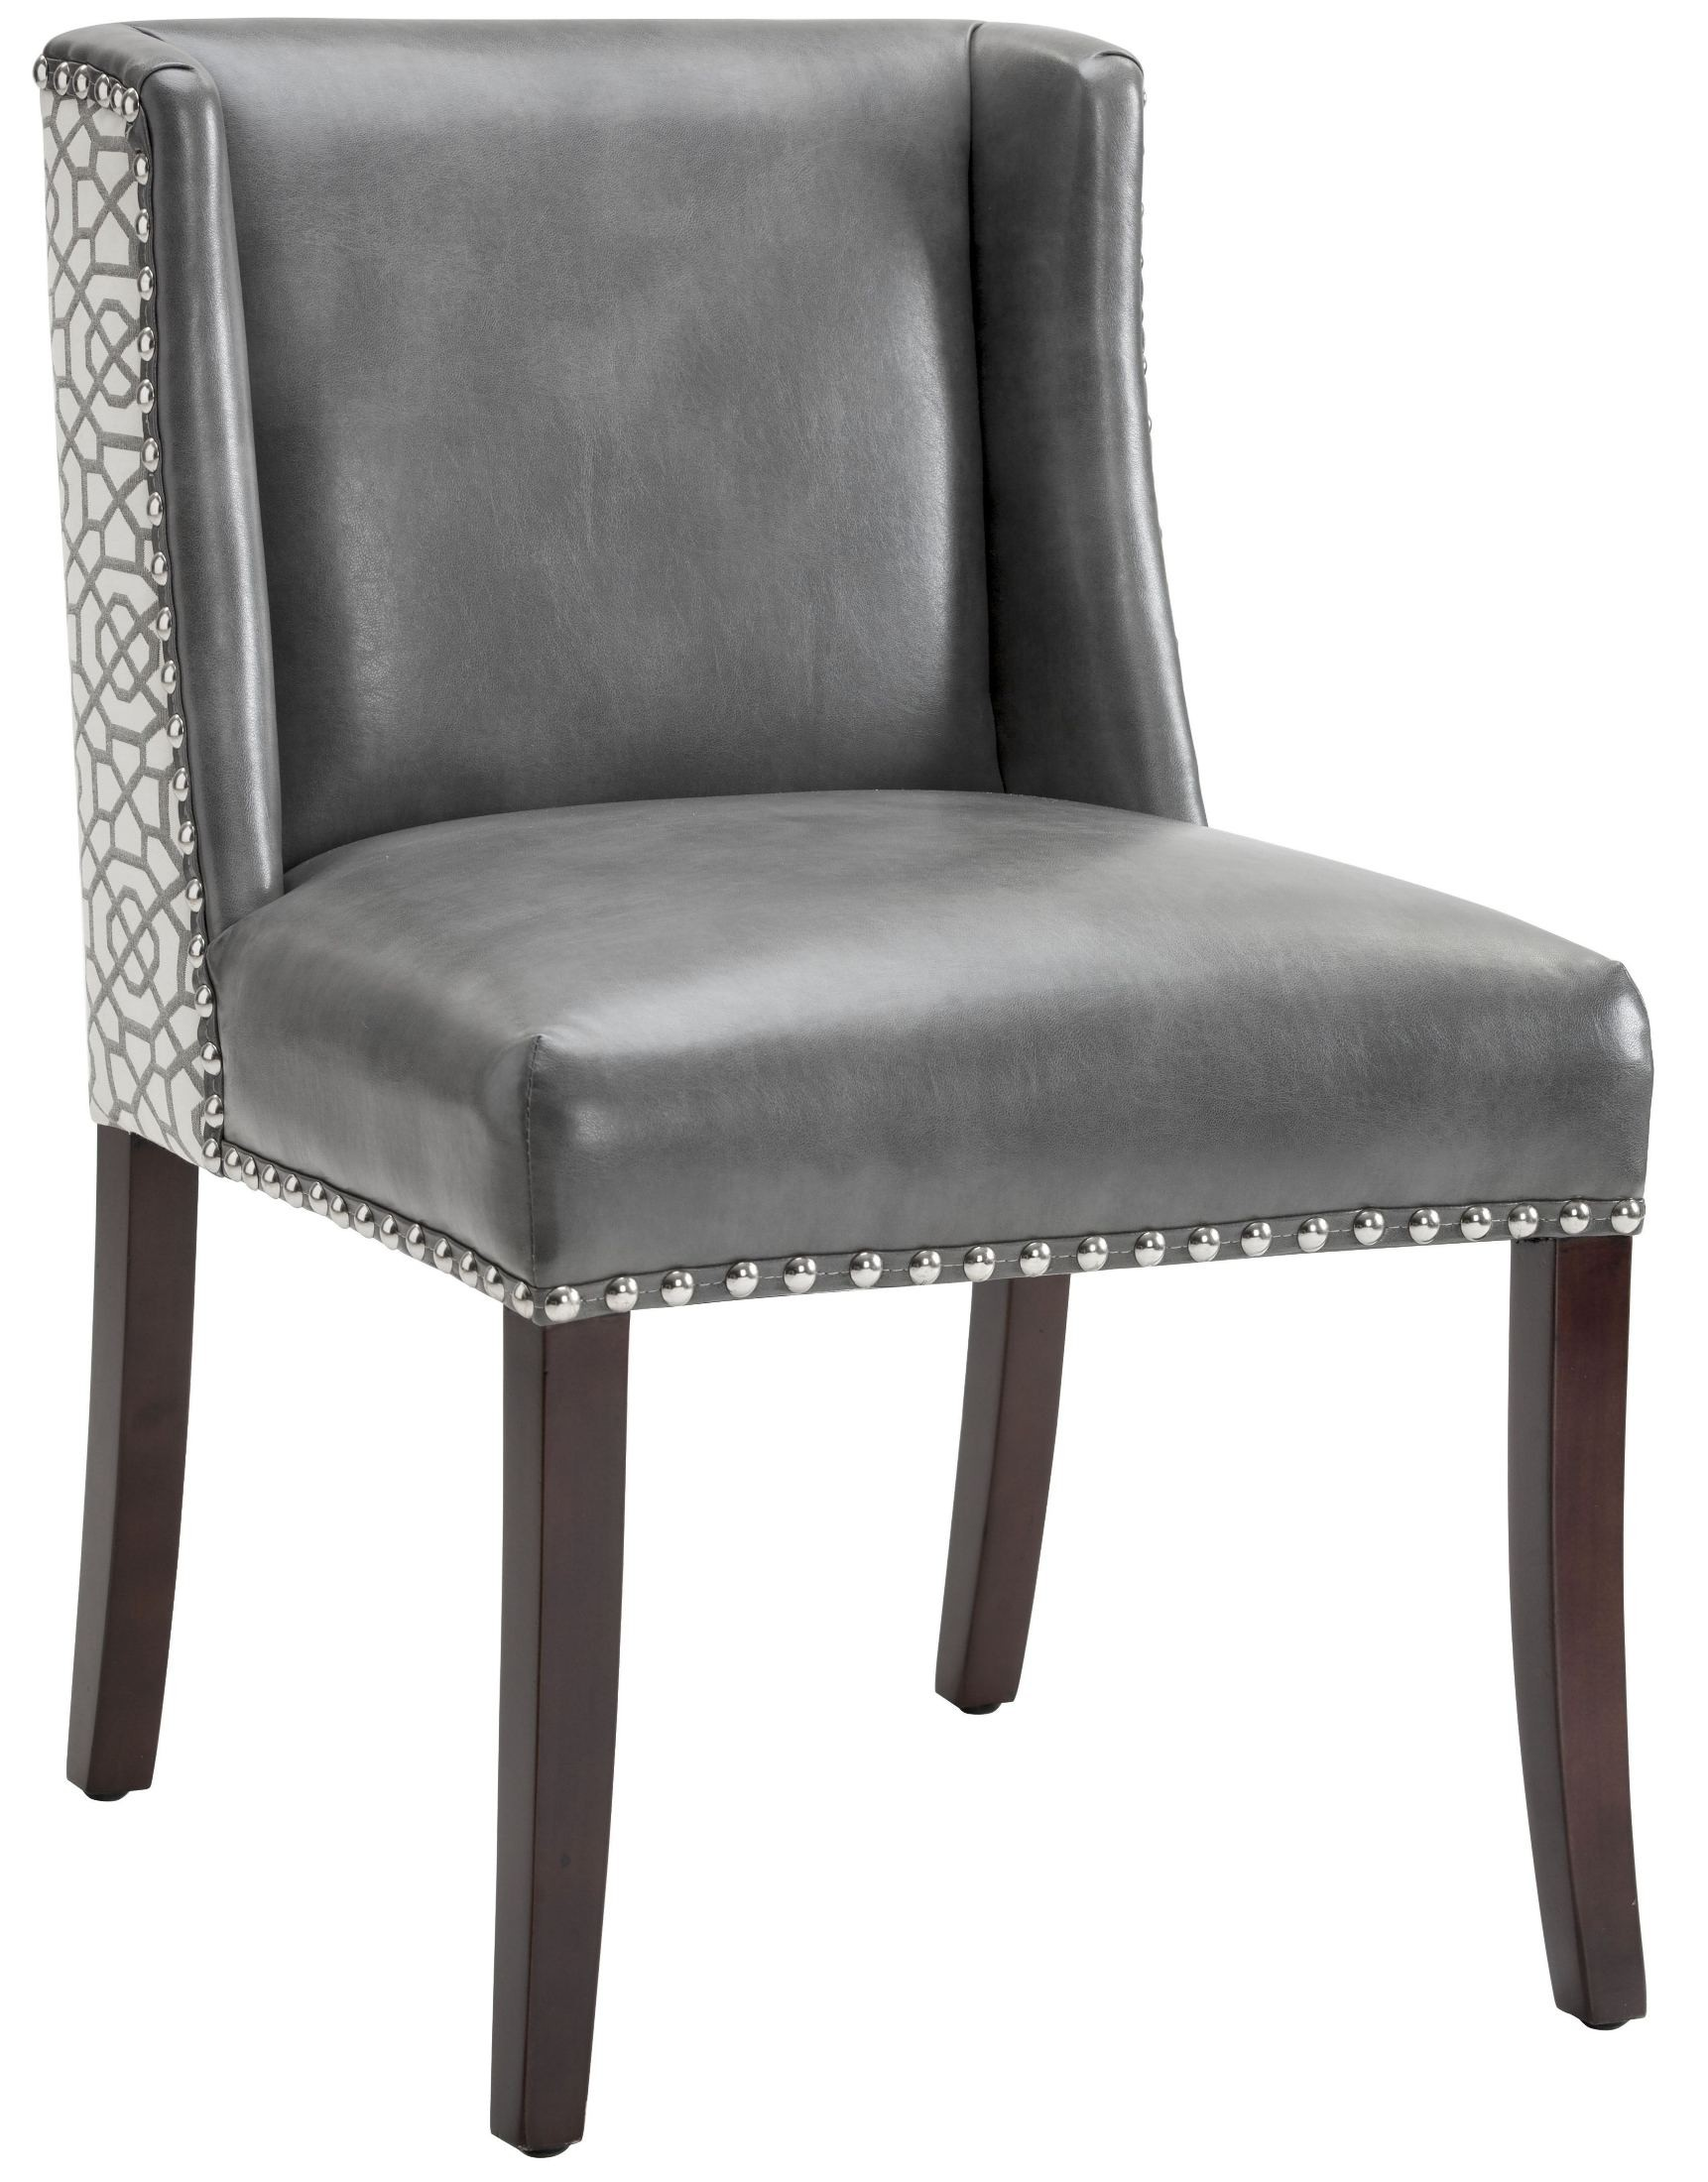 Marlin Grey Leather and Diamond Fabric Dining Chair